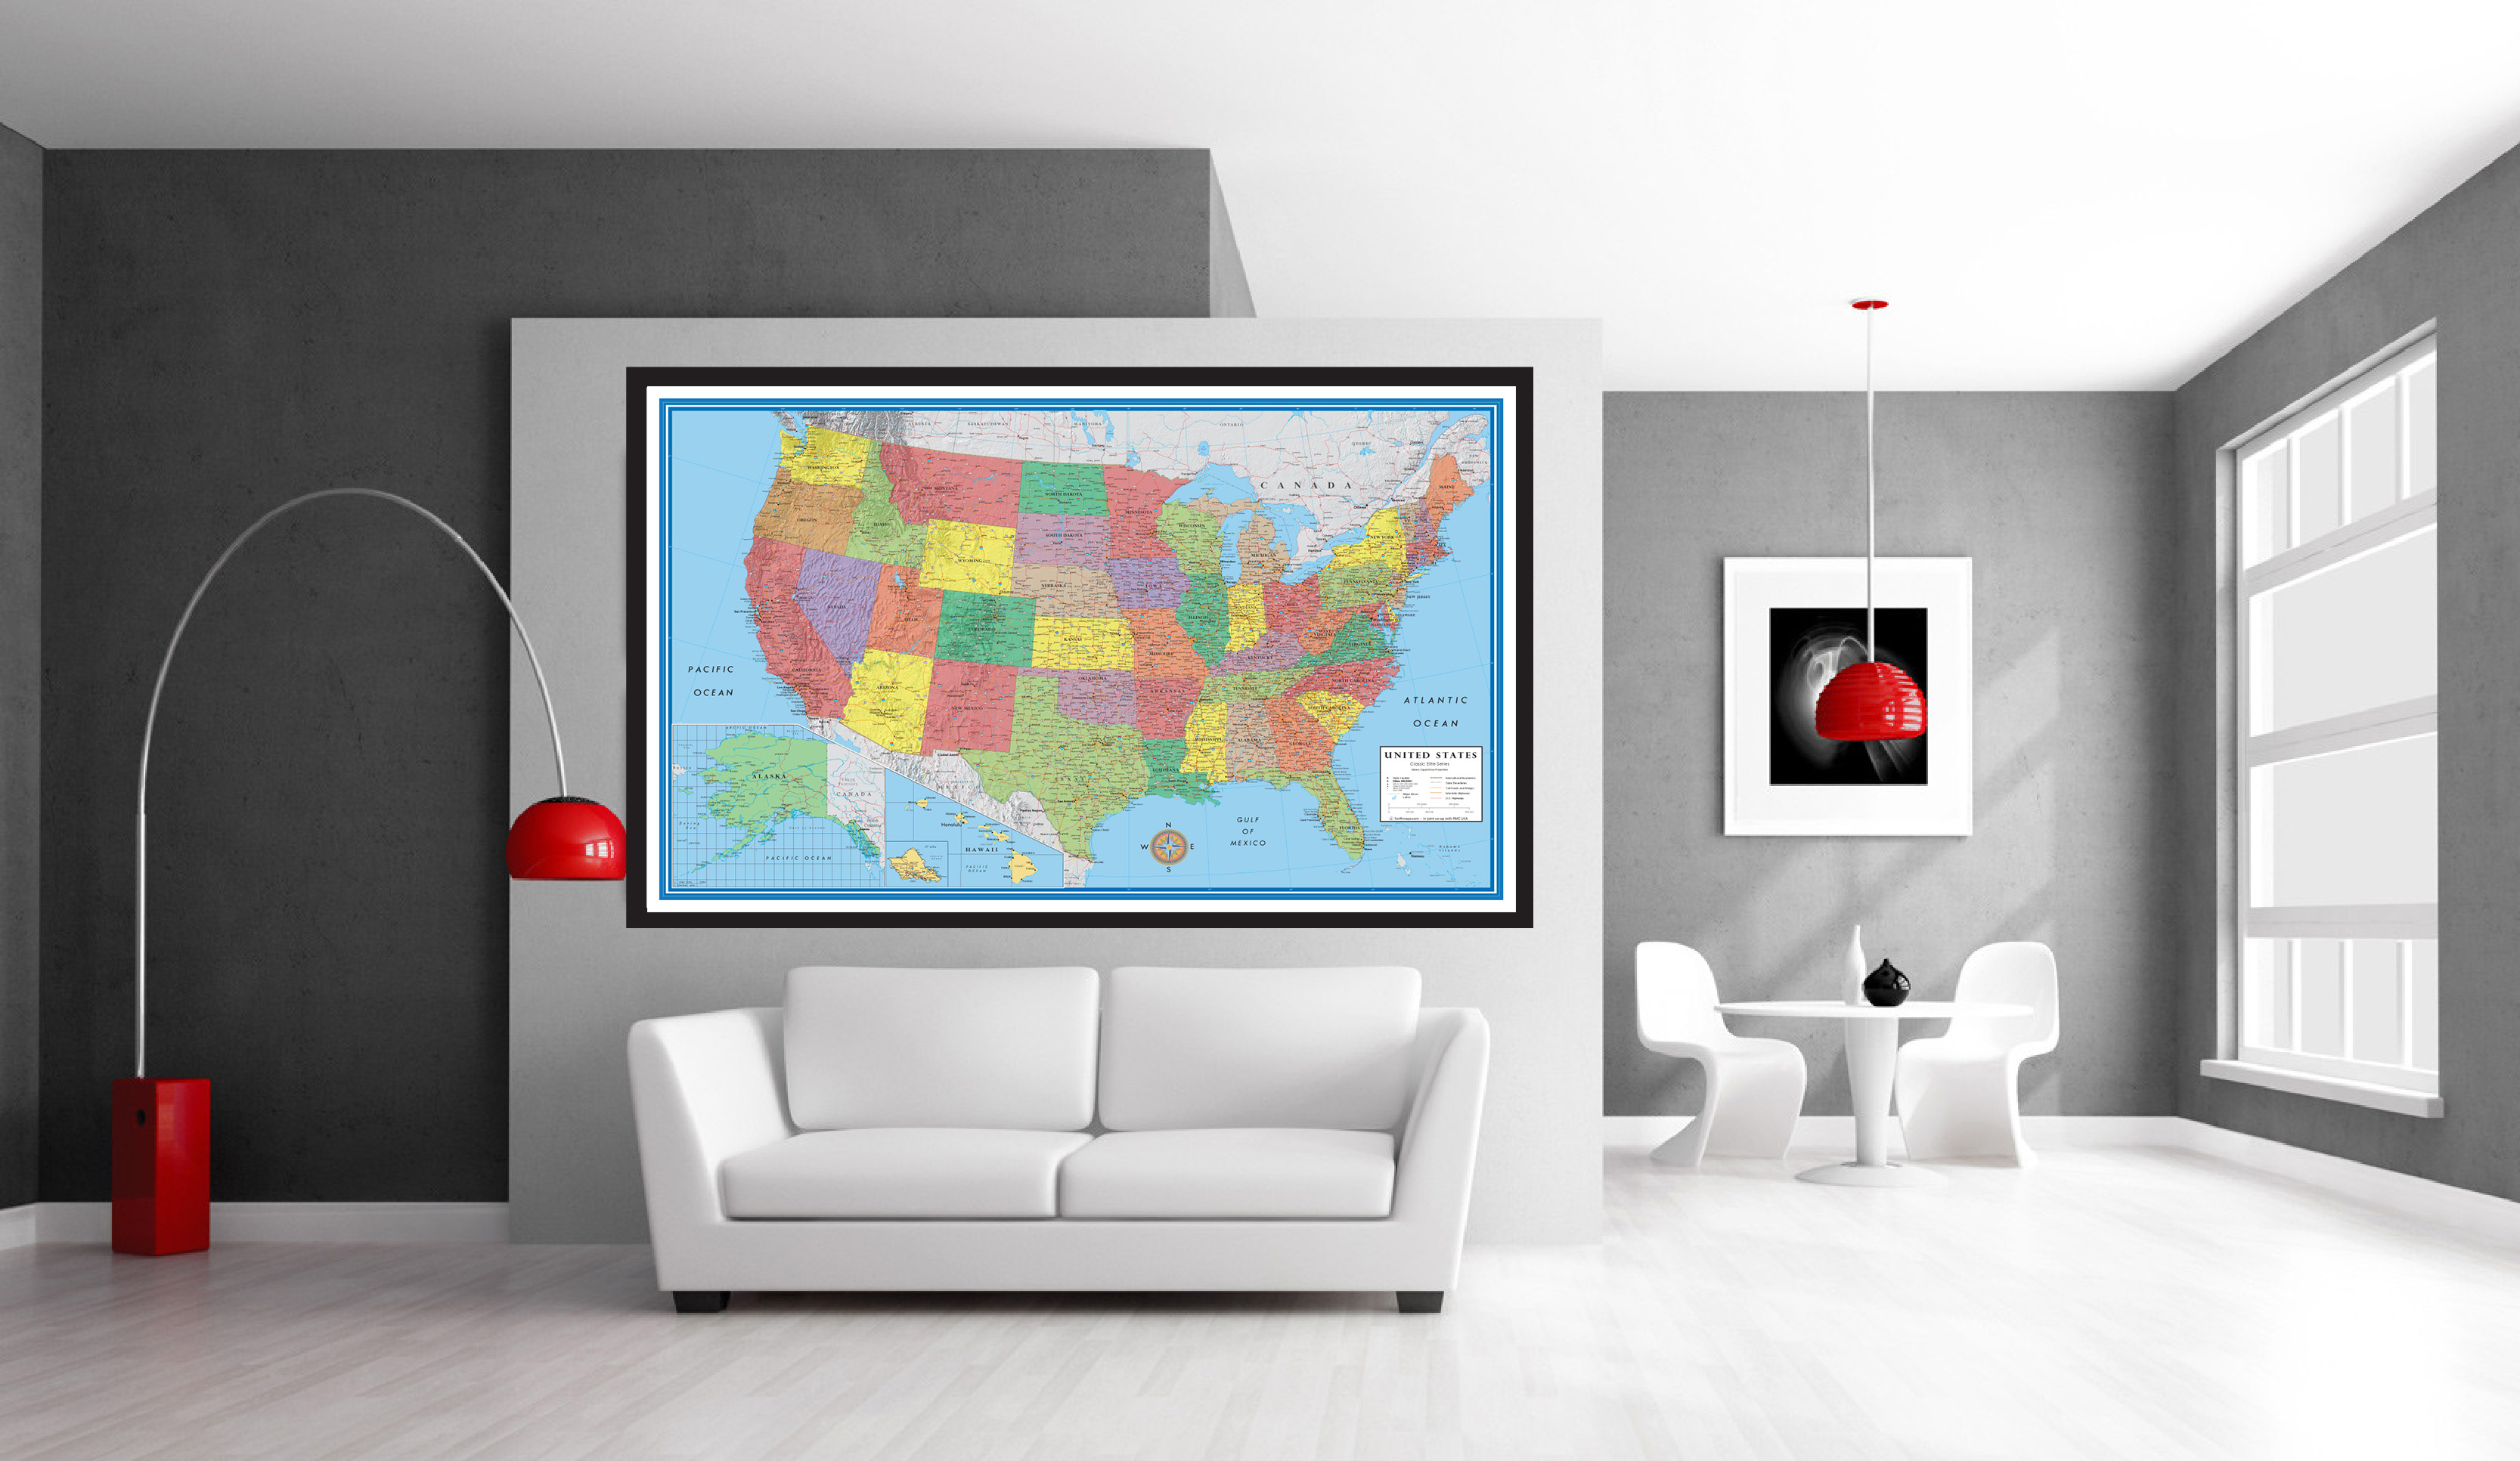 Classic Elite United States Wall Map Poster - Us map poster 24x36